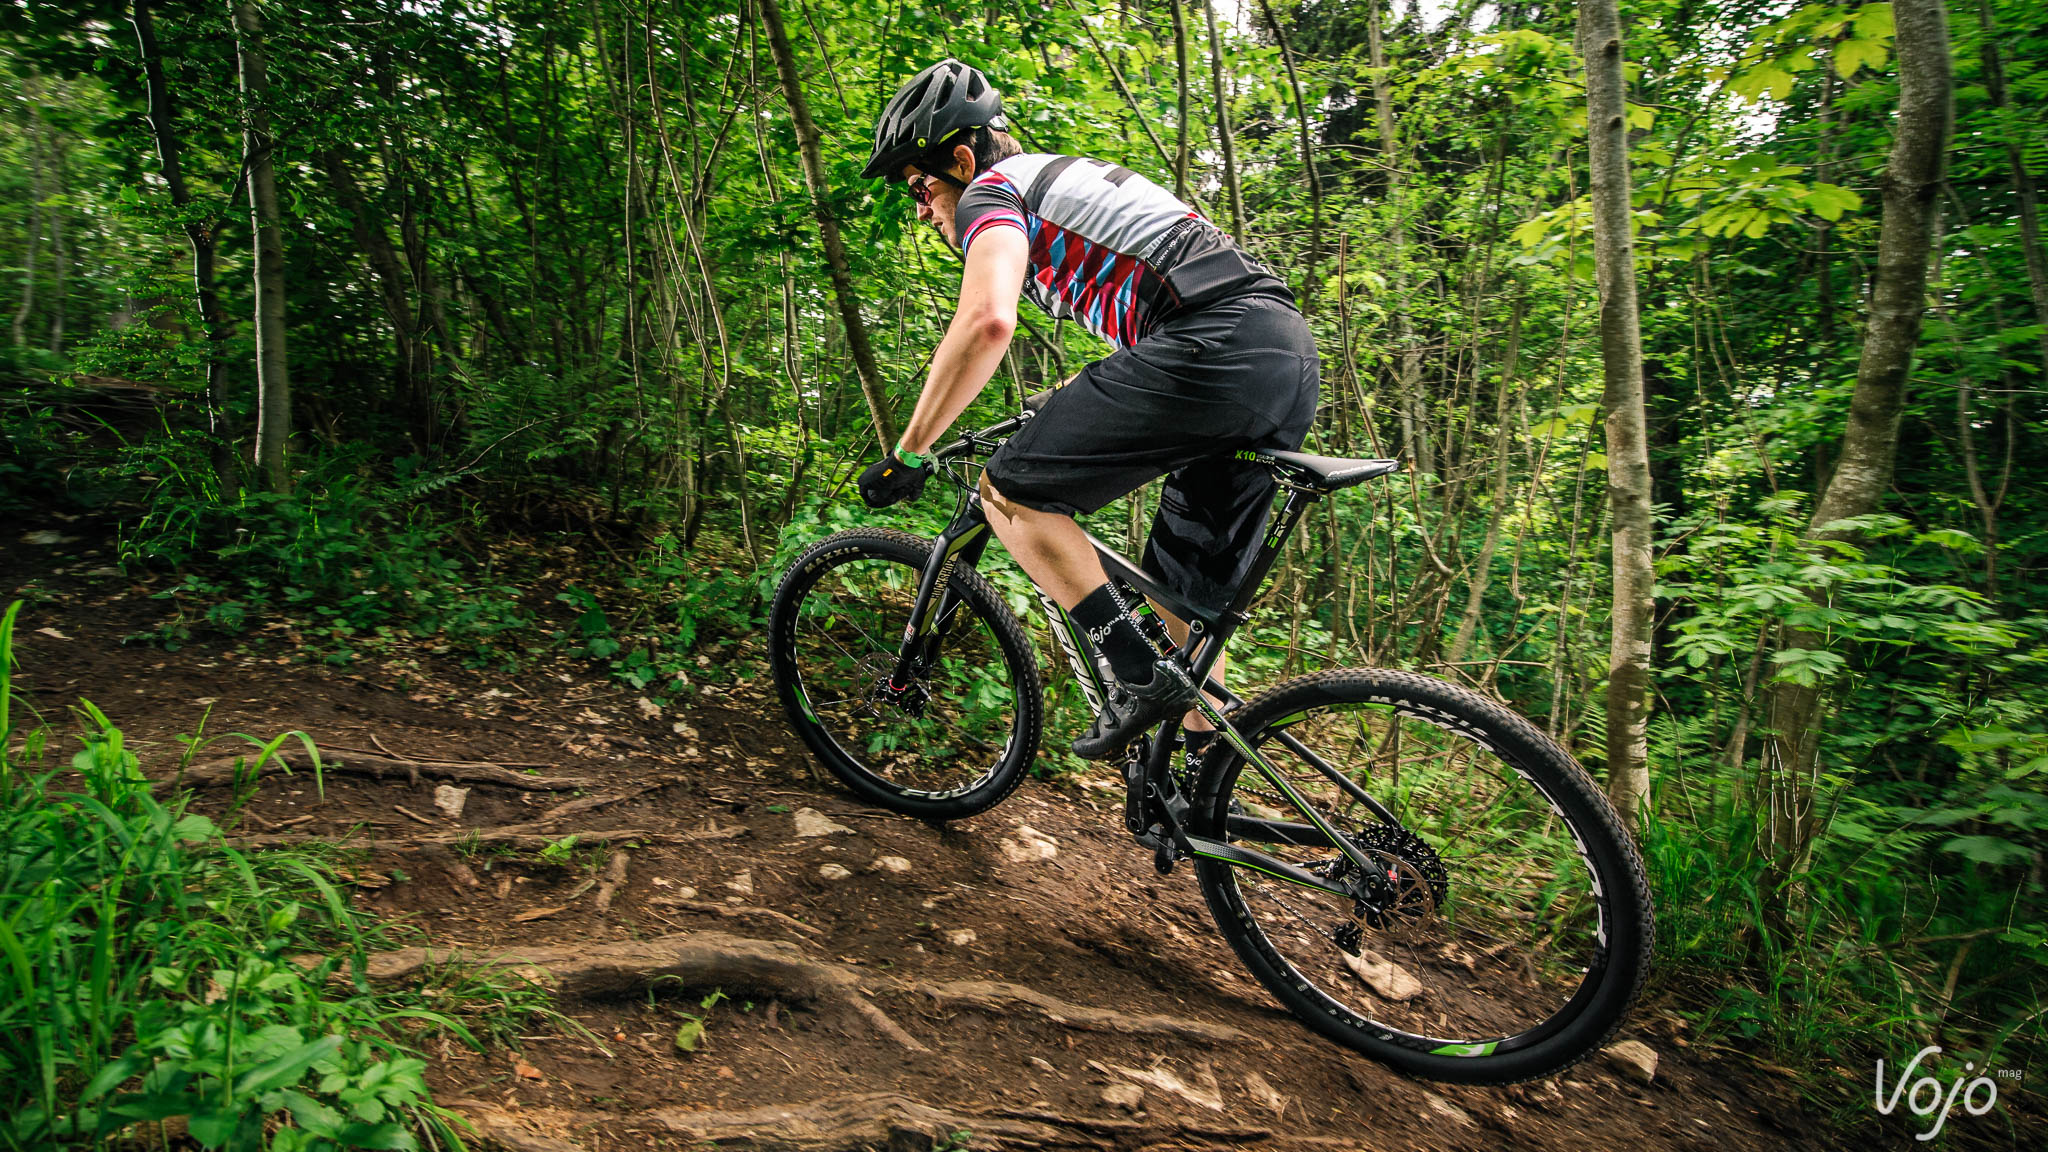 Merida_96_nouveaute_2016_Action_test_Copyright_MTBCult_OBeart_VojoMag-3